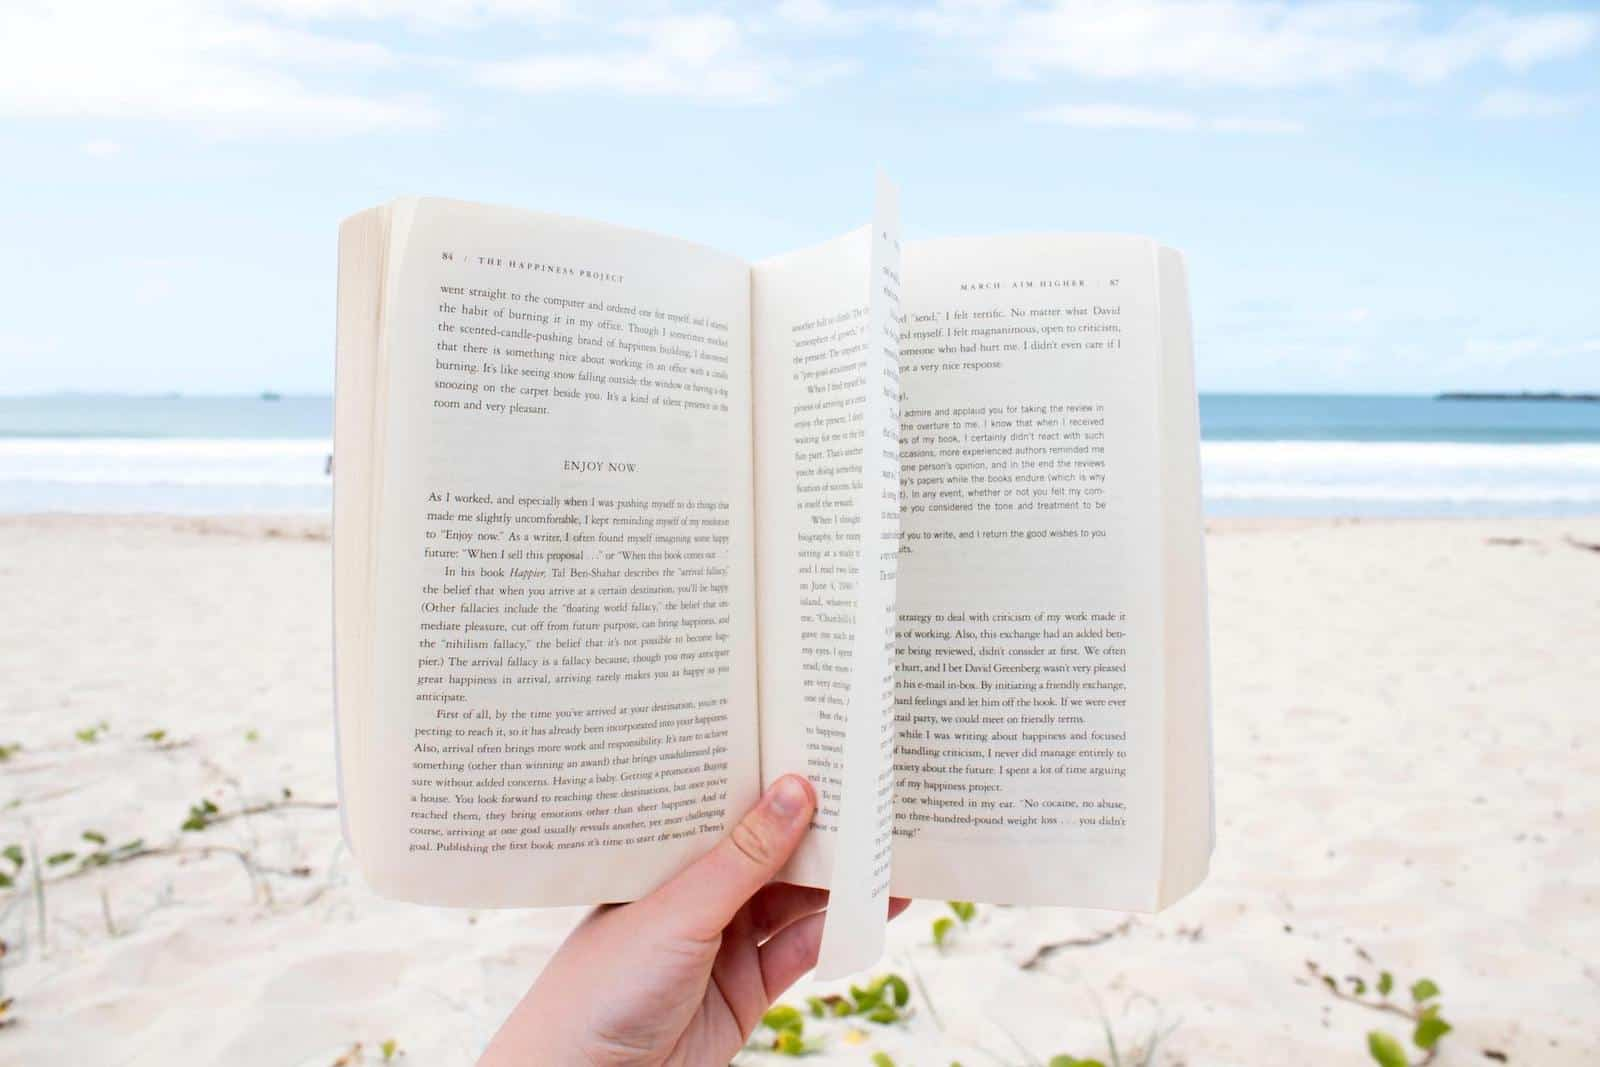 A hand holds a book on a beach